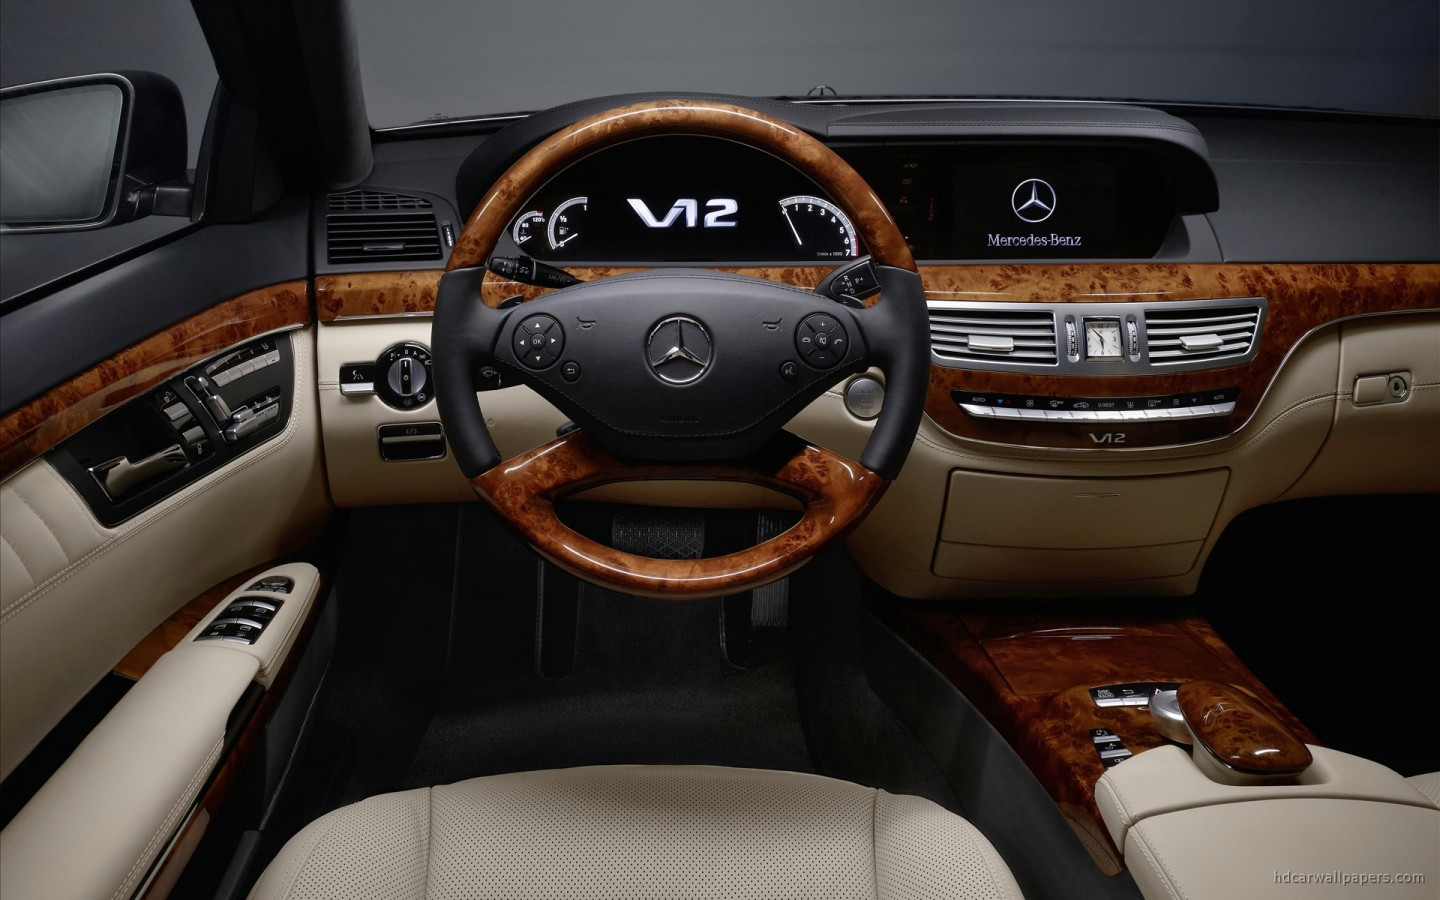 2010 mercedes benz s class interior wallpaper hd car wallpapers id 1264. Black Bedroom Furniture Sets. Home Design Ideas